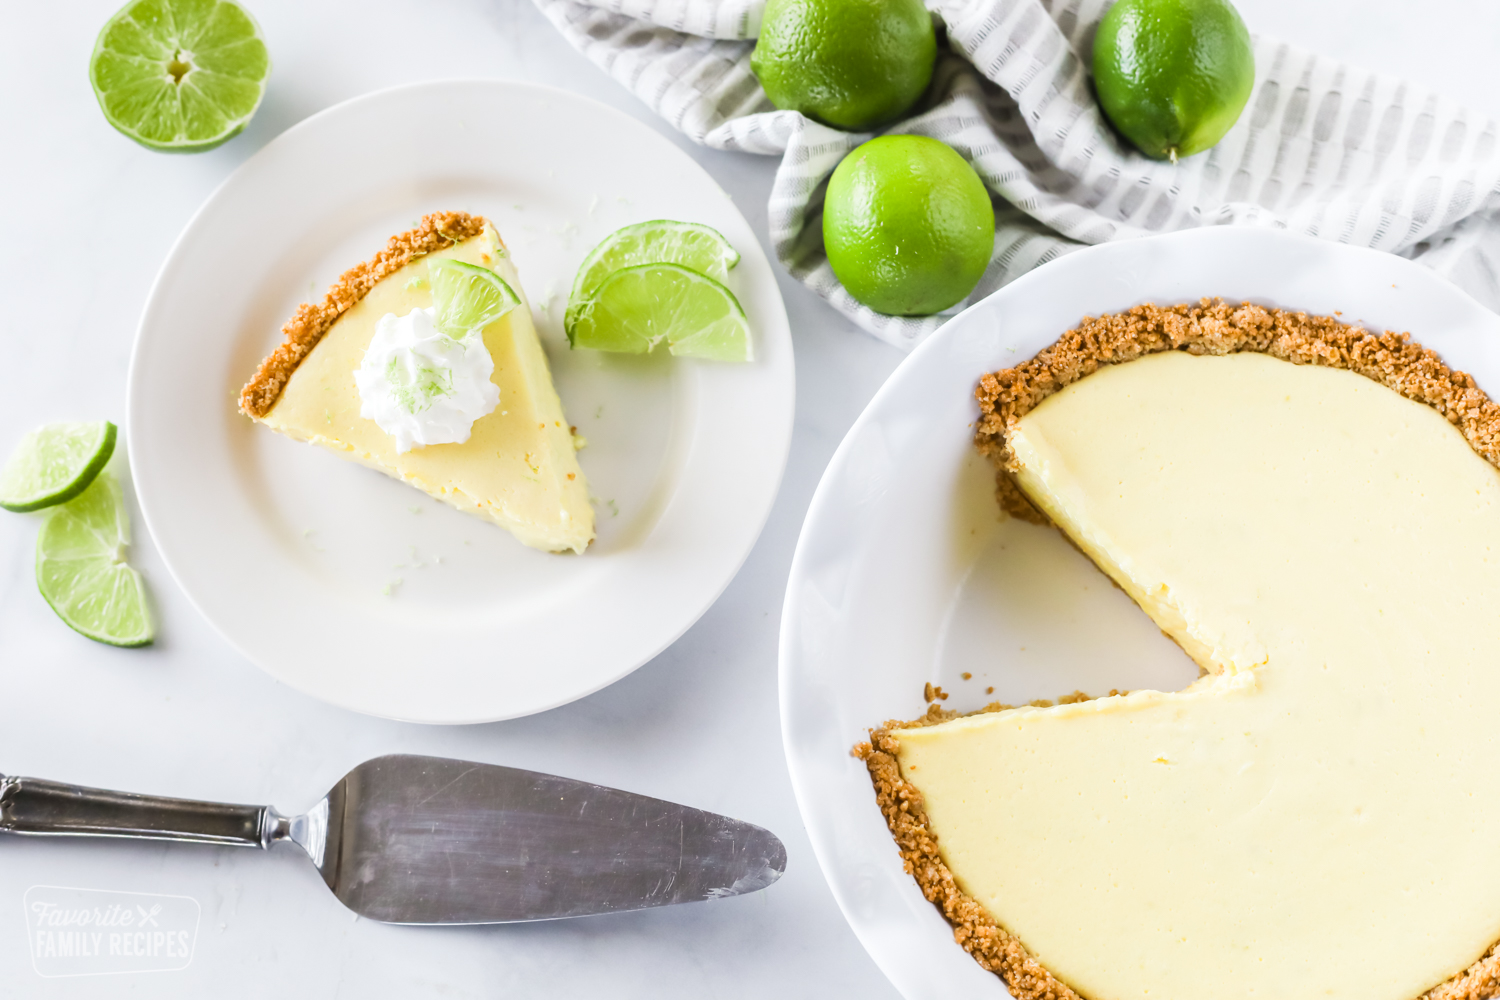 A whole key lime pie made with graham cracker crust and a slice taken out of it with limes as garnishes